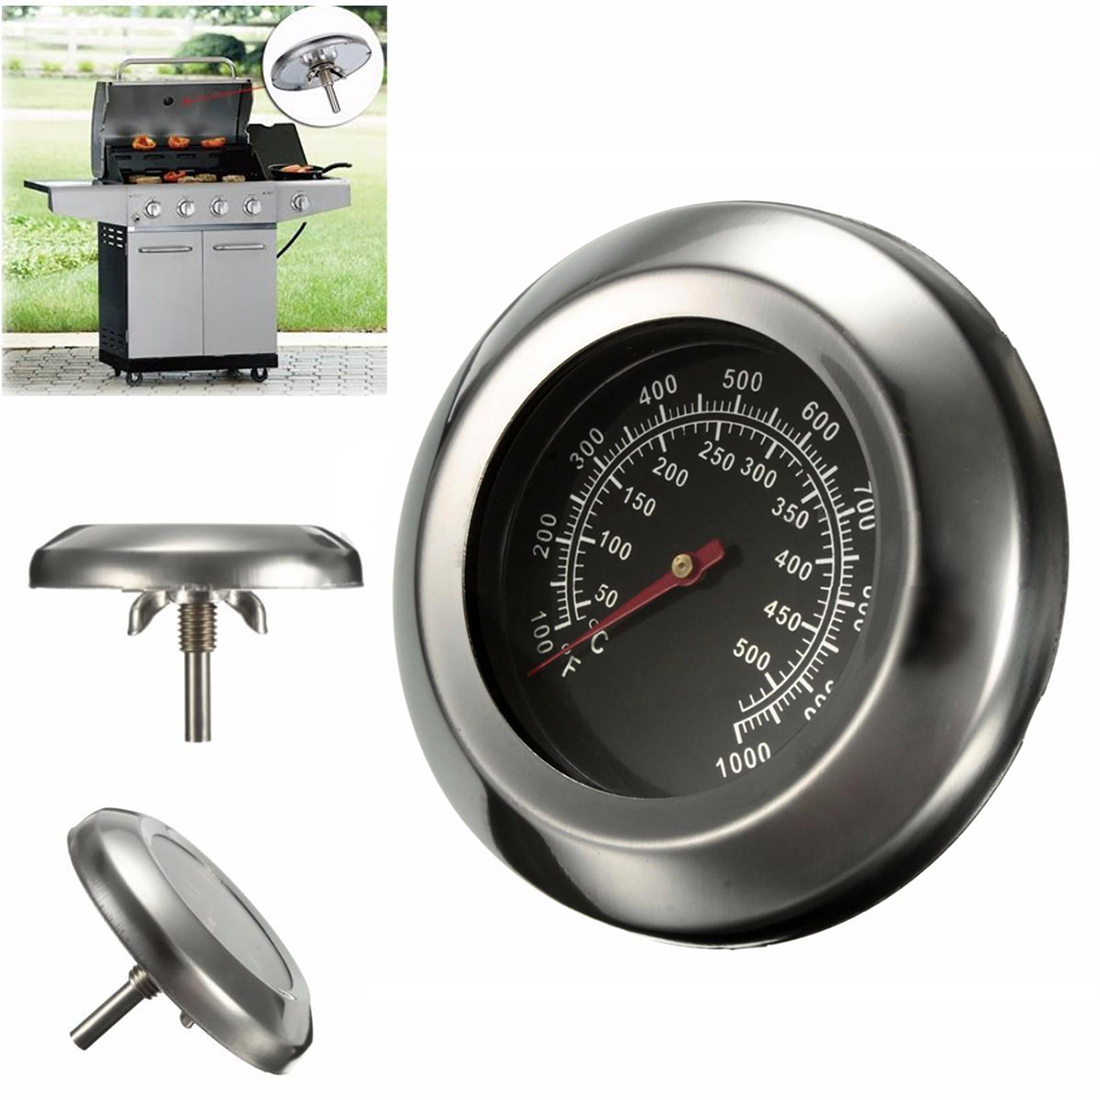 Dia 3 Degrees Celsius/Fahrenheit 50~500Degrees Celsius Roast Barbecue BBQ Pit Smoker Grill Thermometer Temp Gauge